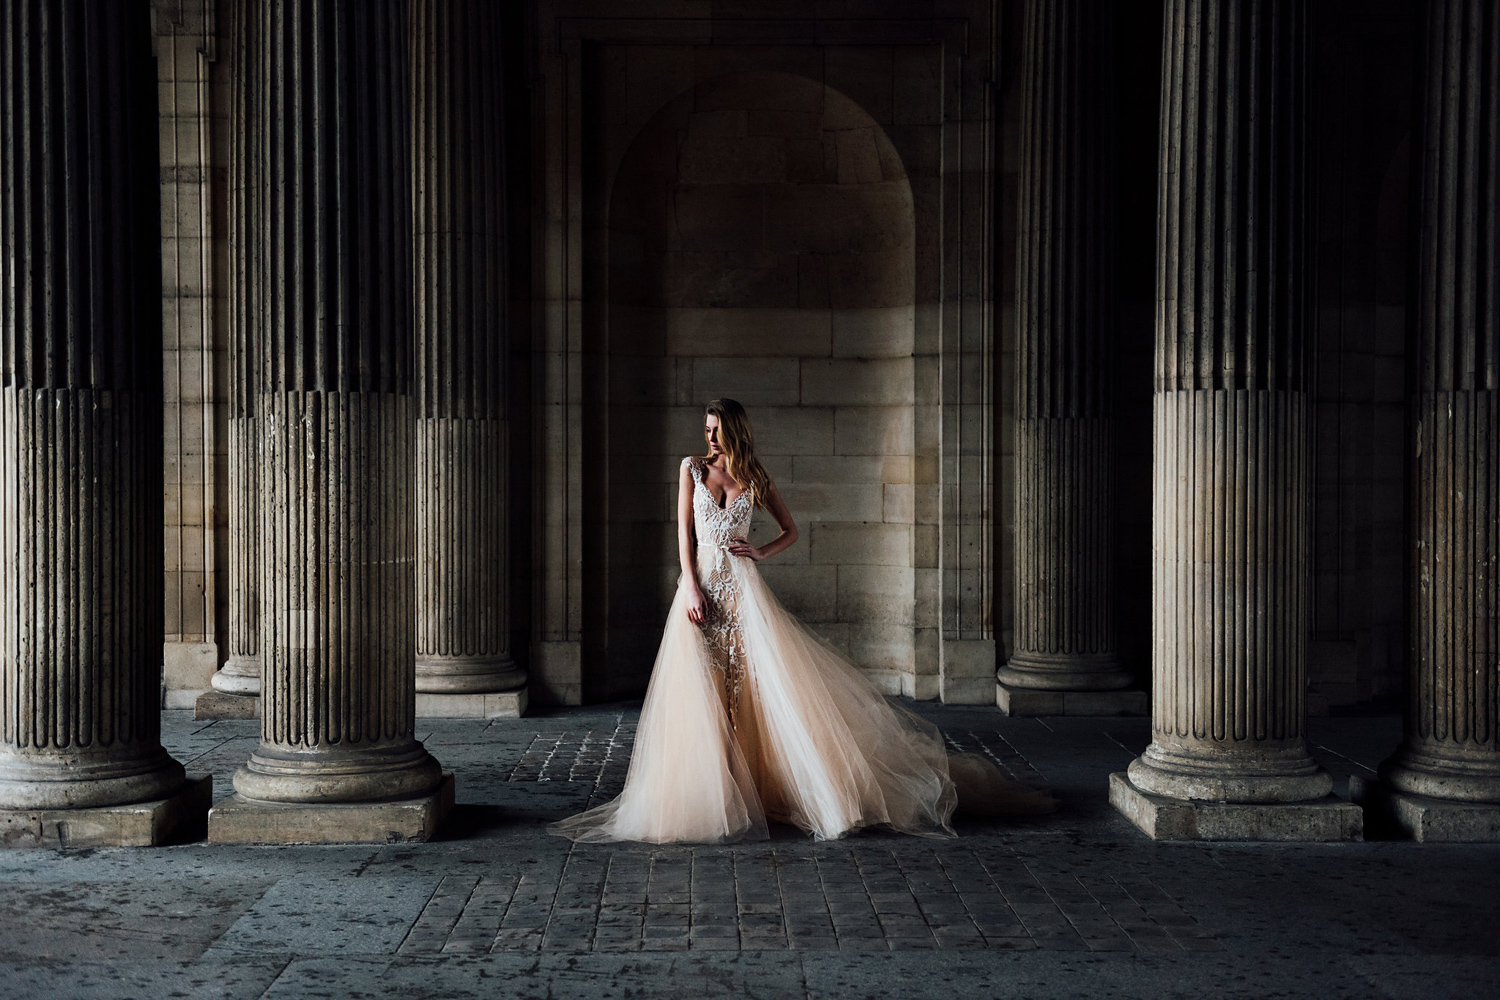 katie mitchell monique lhuillier bridal paris france wedding photographer_09.jpg